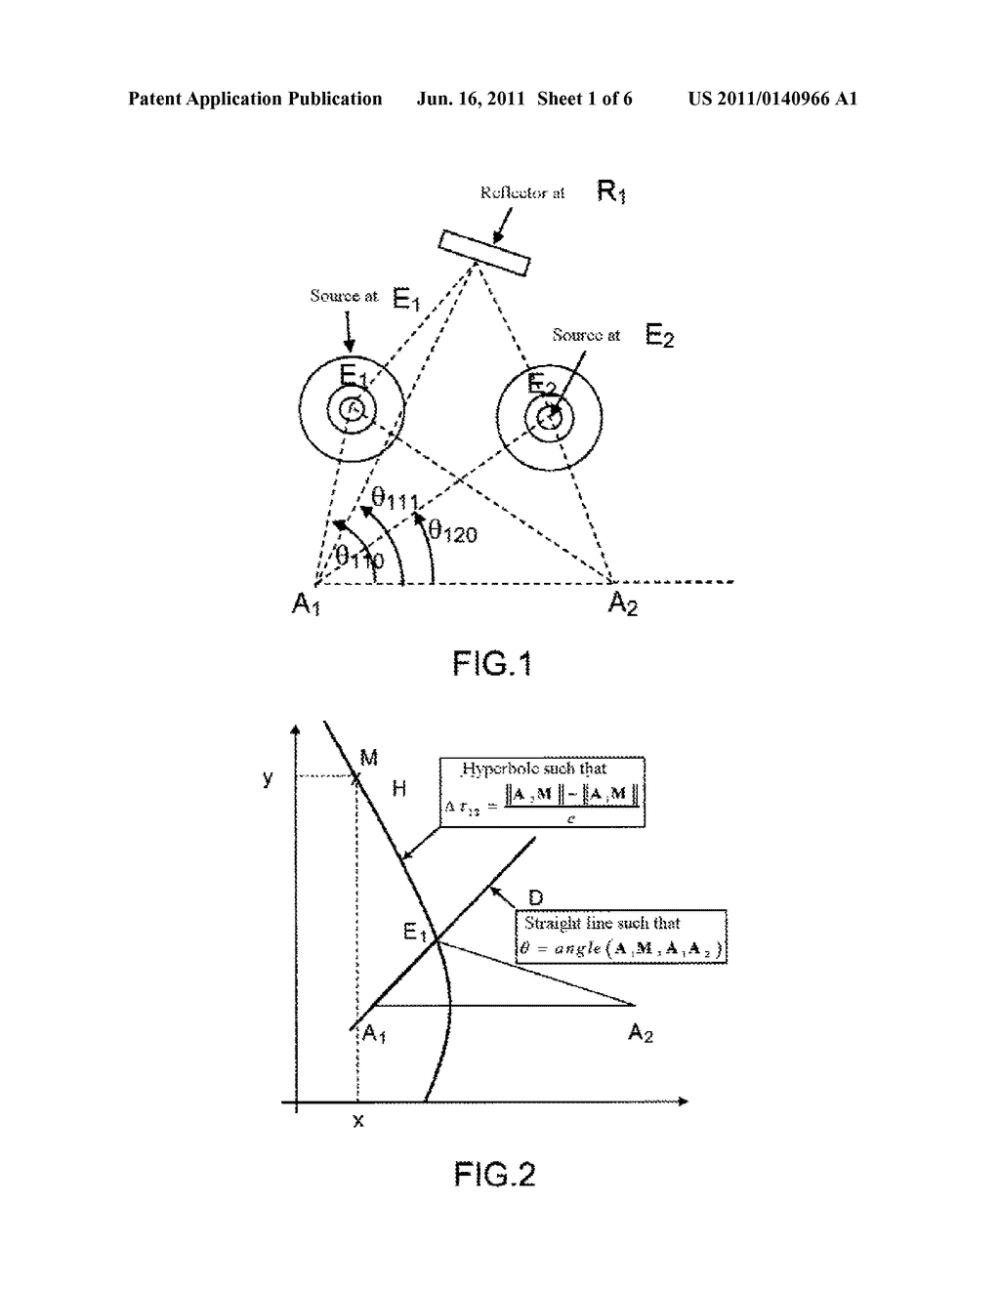 medium resolution of method of multi transmitter and multi path aoa tdoa location comprising a sub method for synchronizing and equalizing the receiving stations diagram